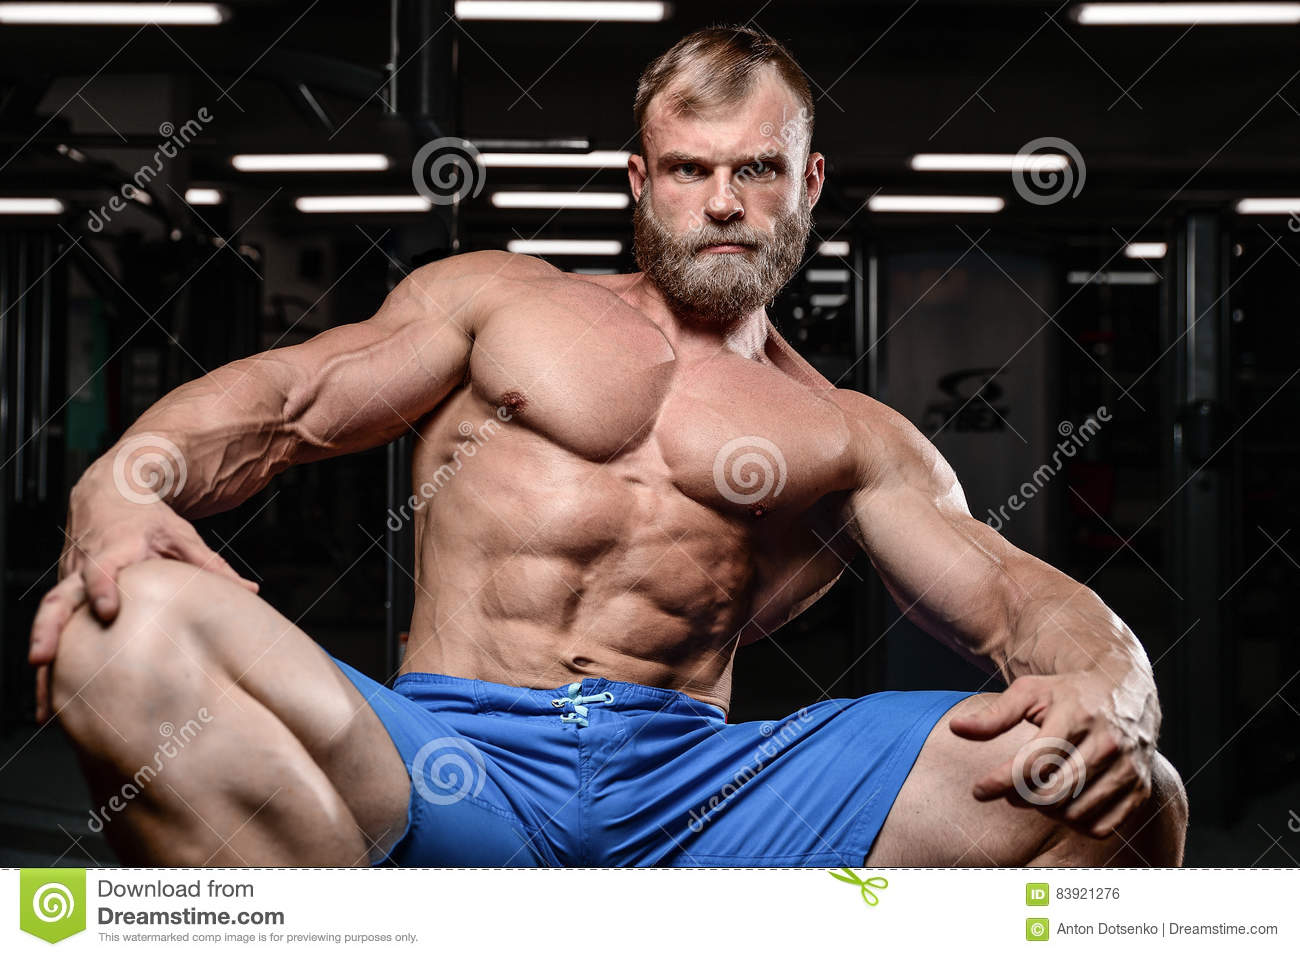 Brutal muscular man with beard unshaven fitness model healthcare